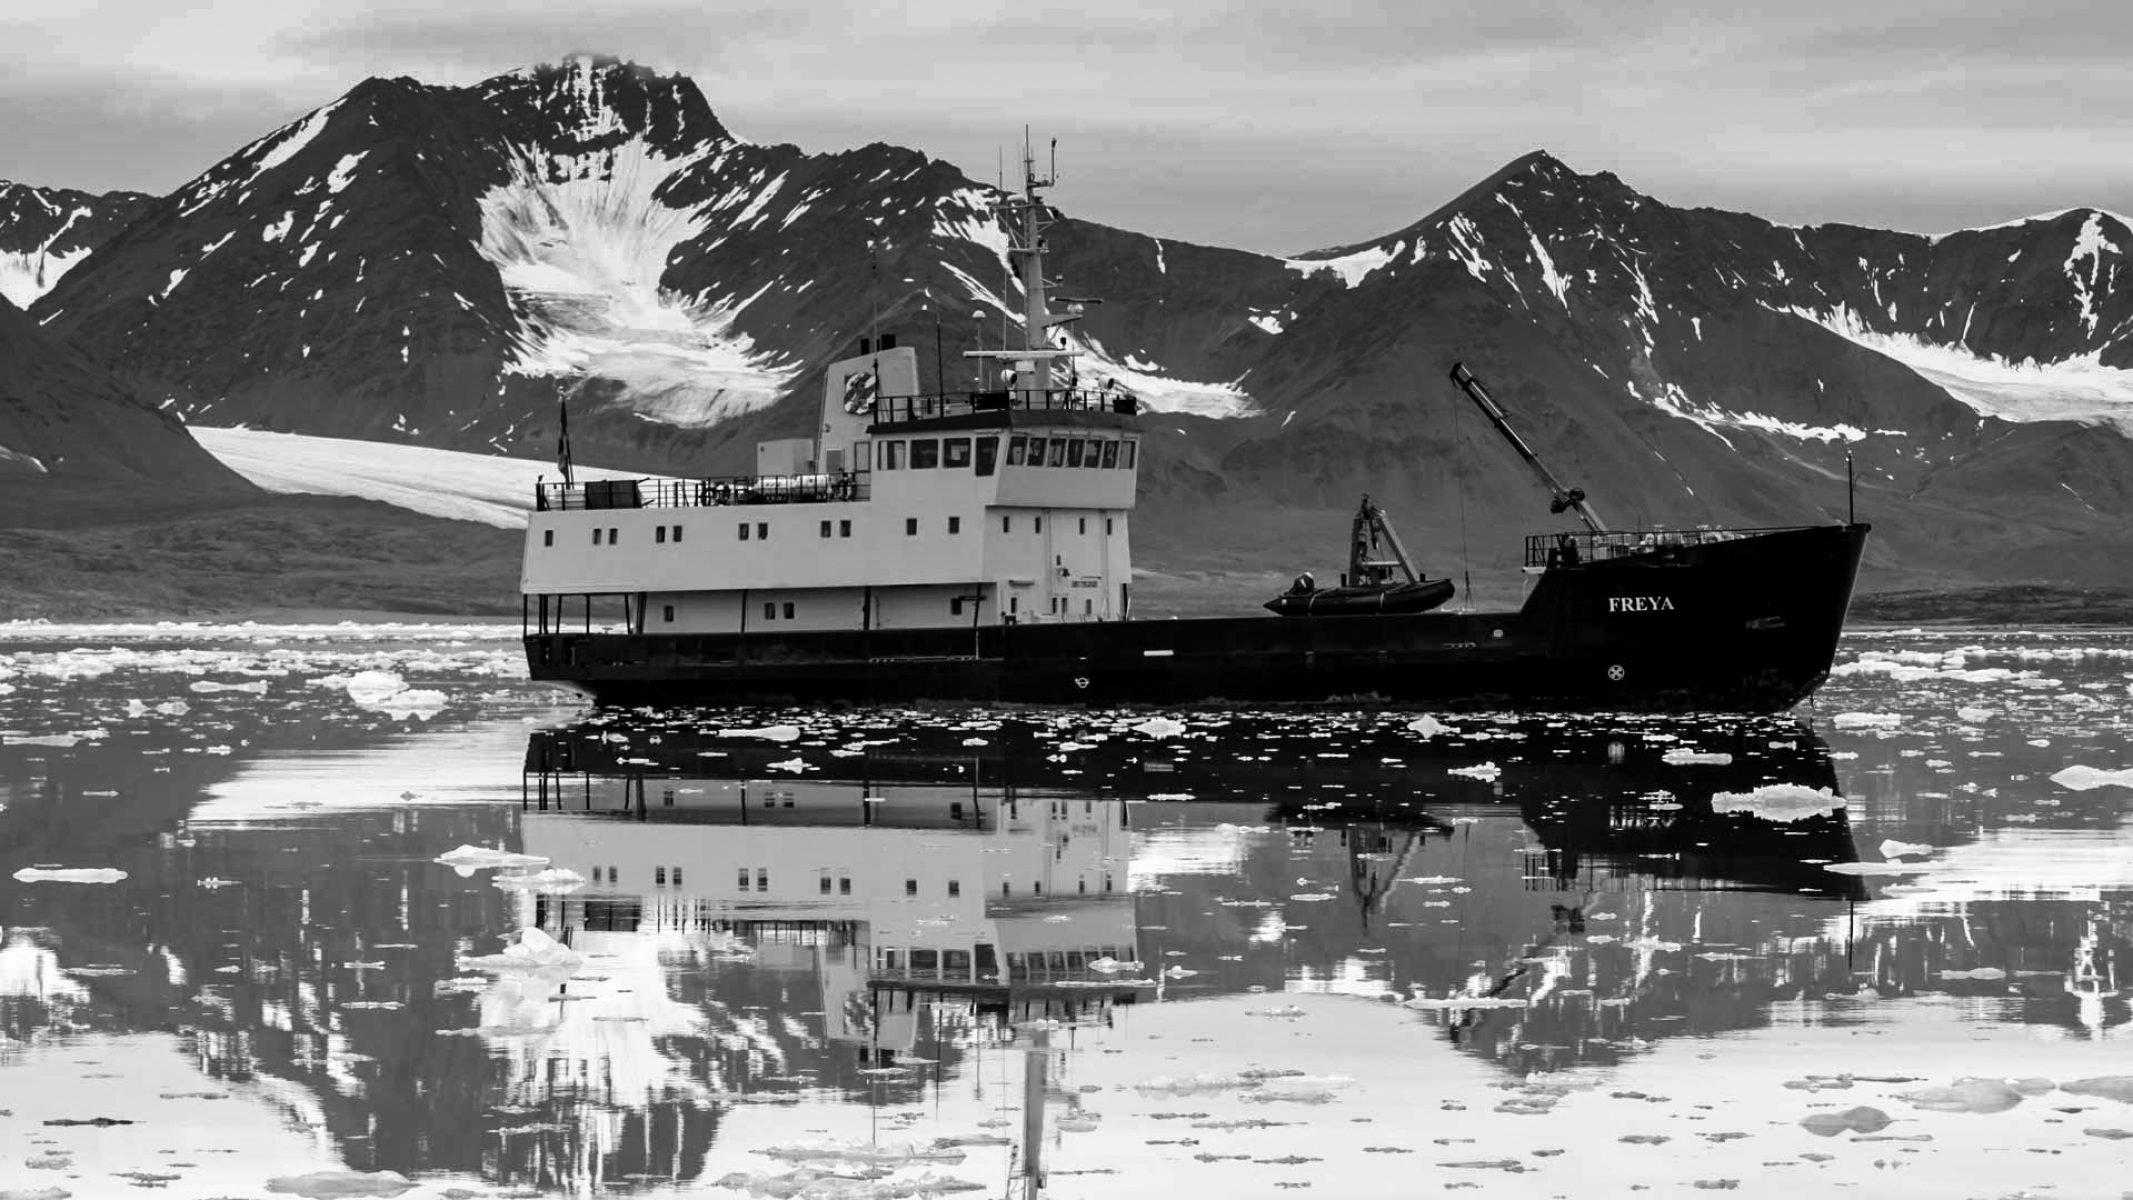 Svalbard Photography Tour – 19 June, 2017